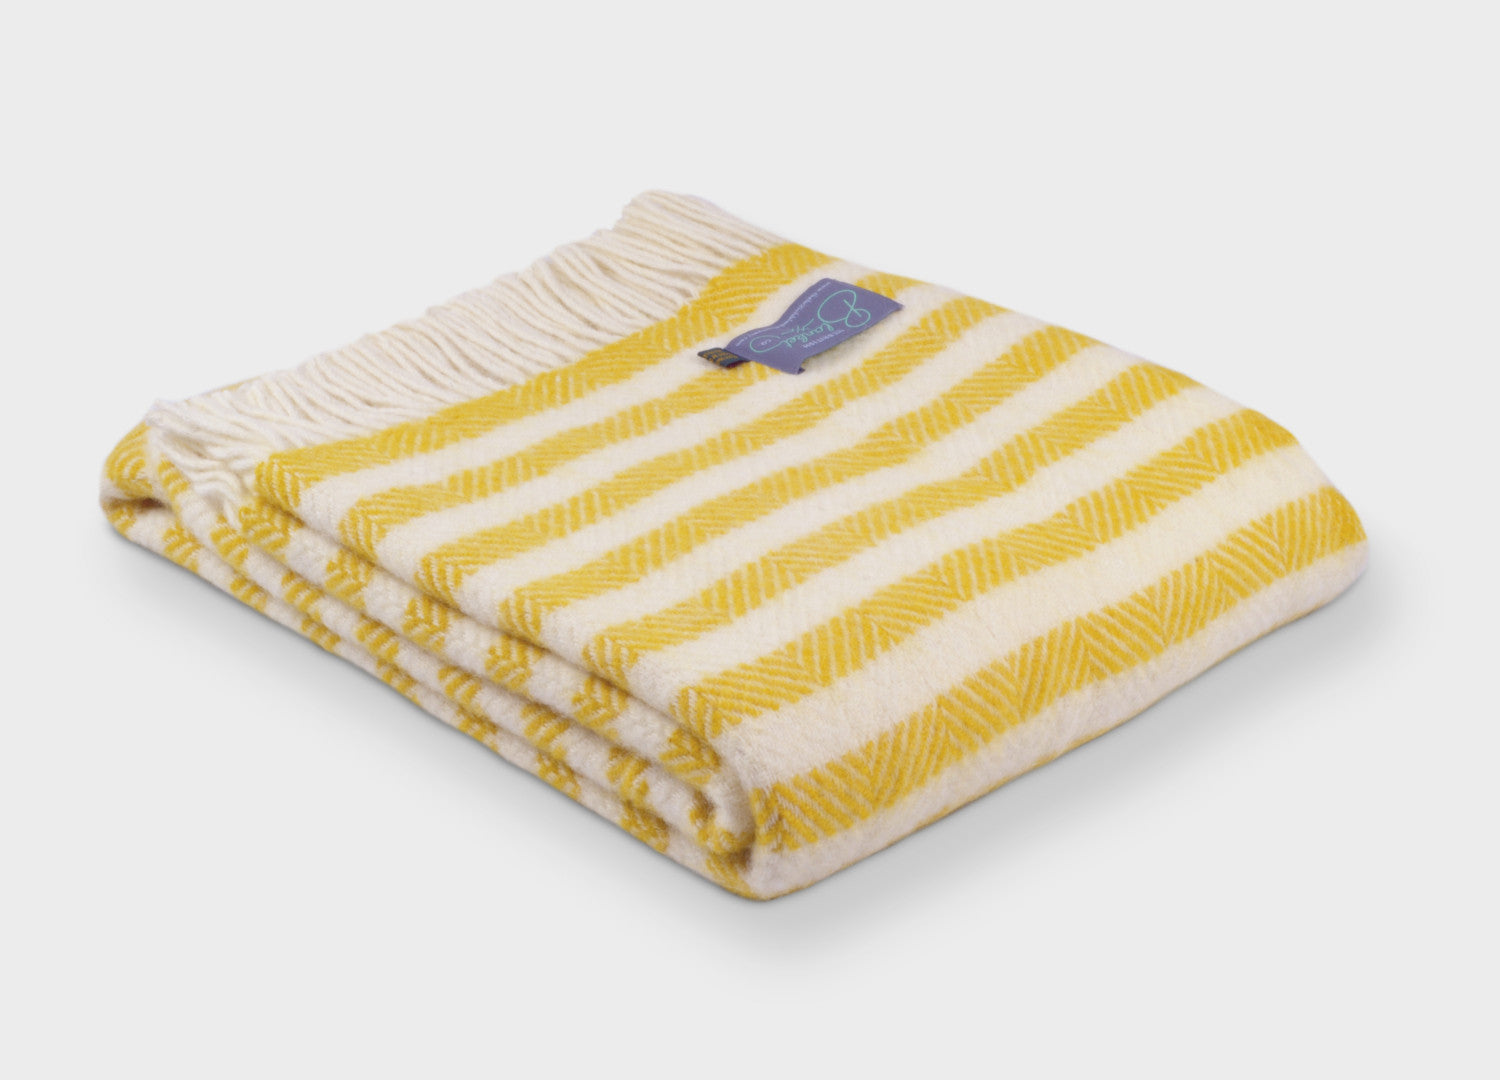 Yellow Lemon Sherbet Stripe Throw - buy at The British Blanket Company 387e21cf3